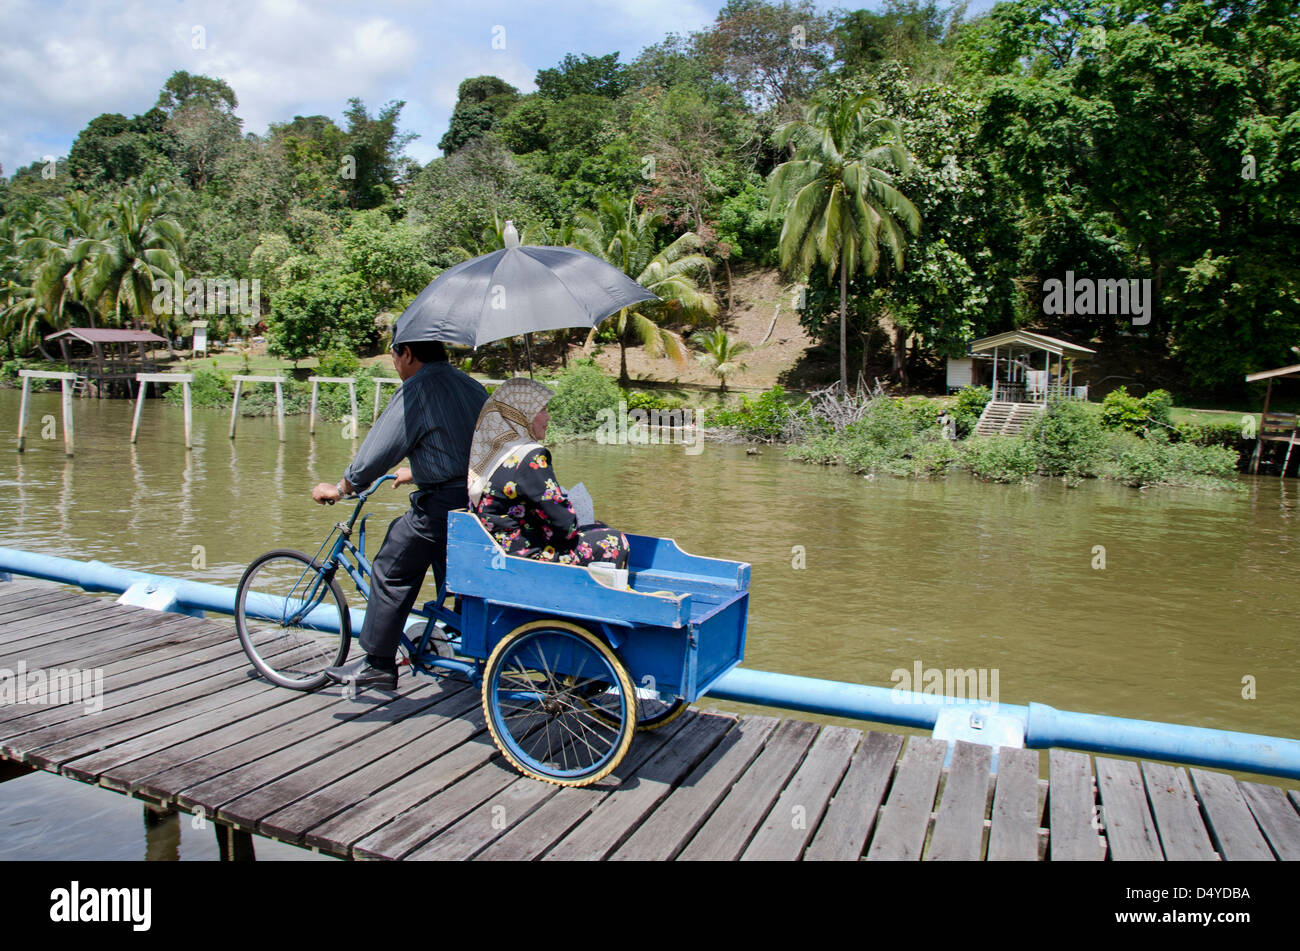 Borneo, Brunei Darussalam. District of Bandar Seri Begawan. Man on bicycle with woman on back. - Stock Image